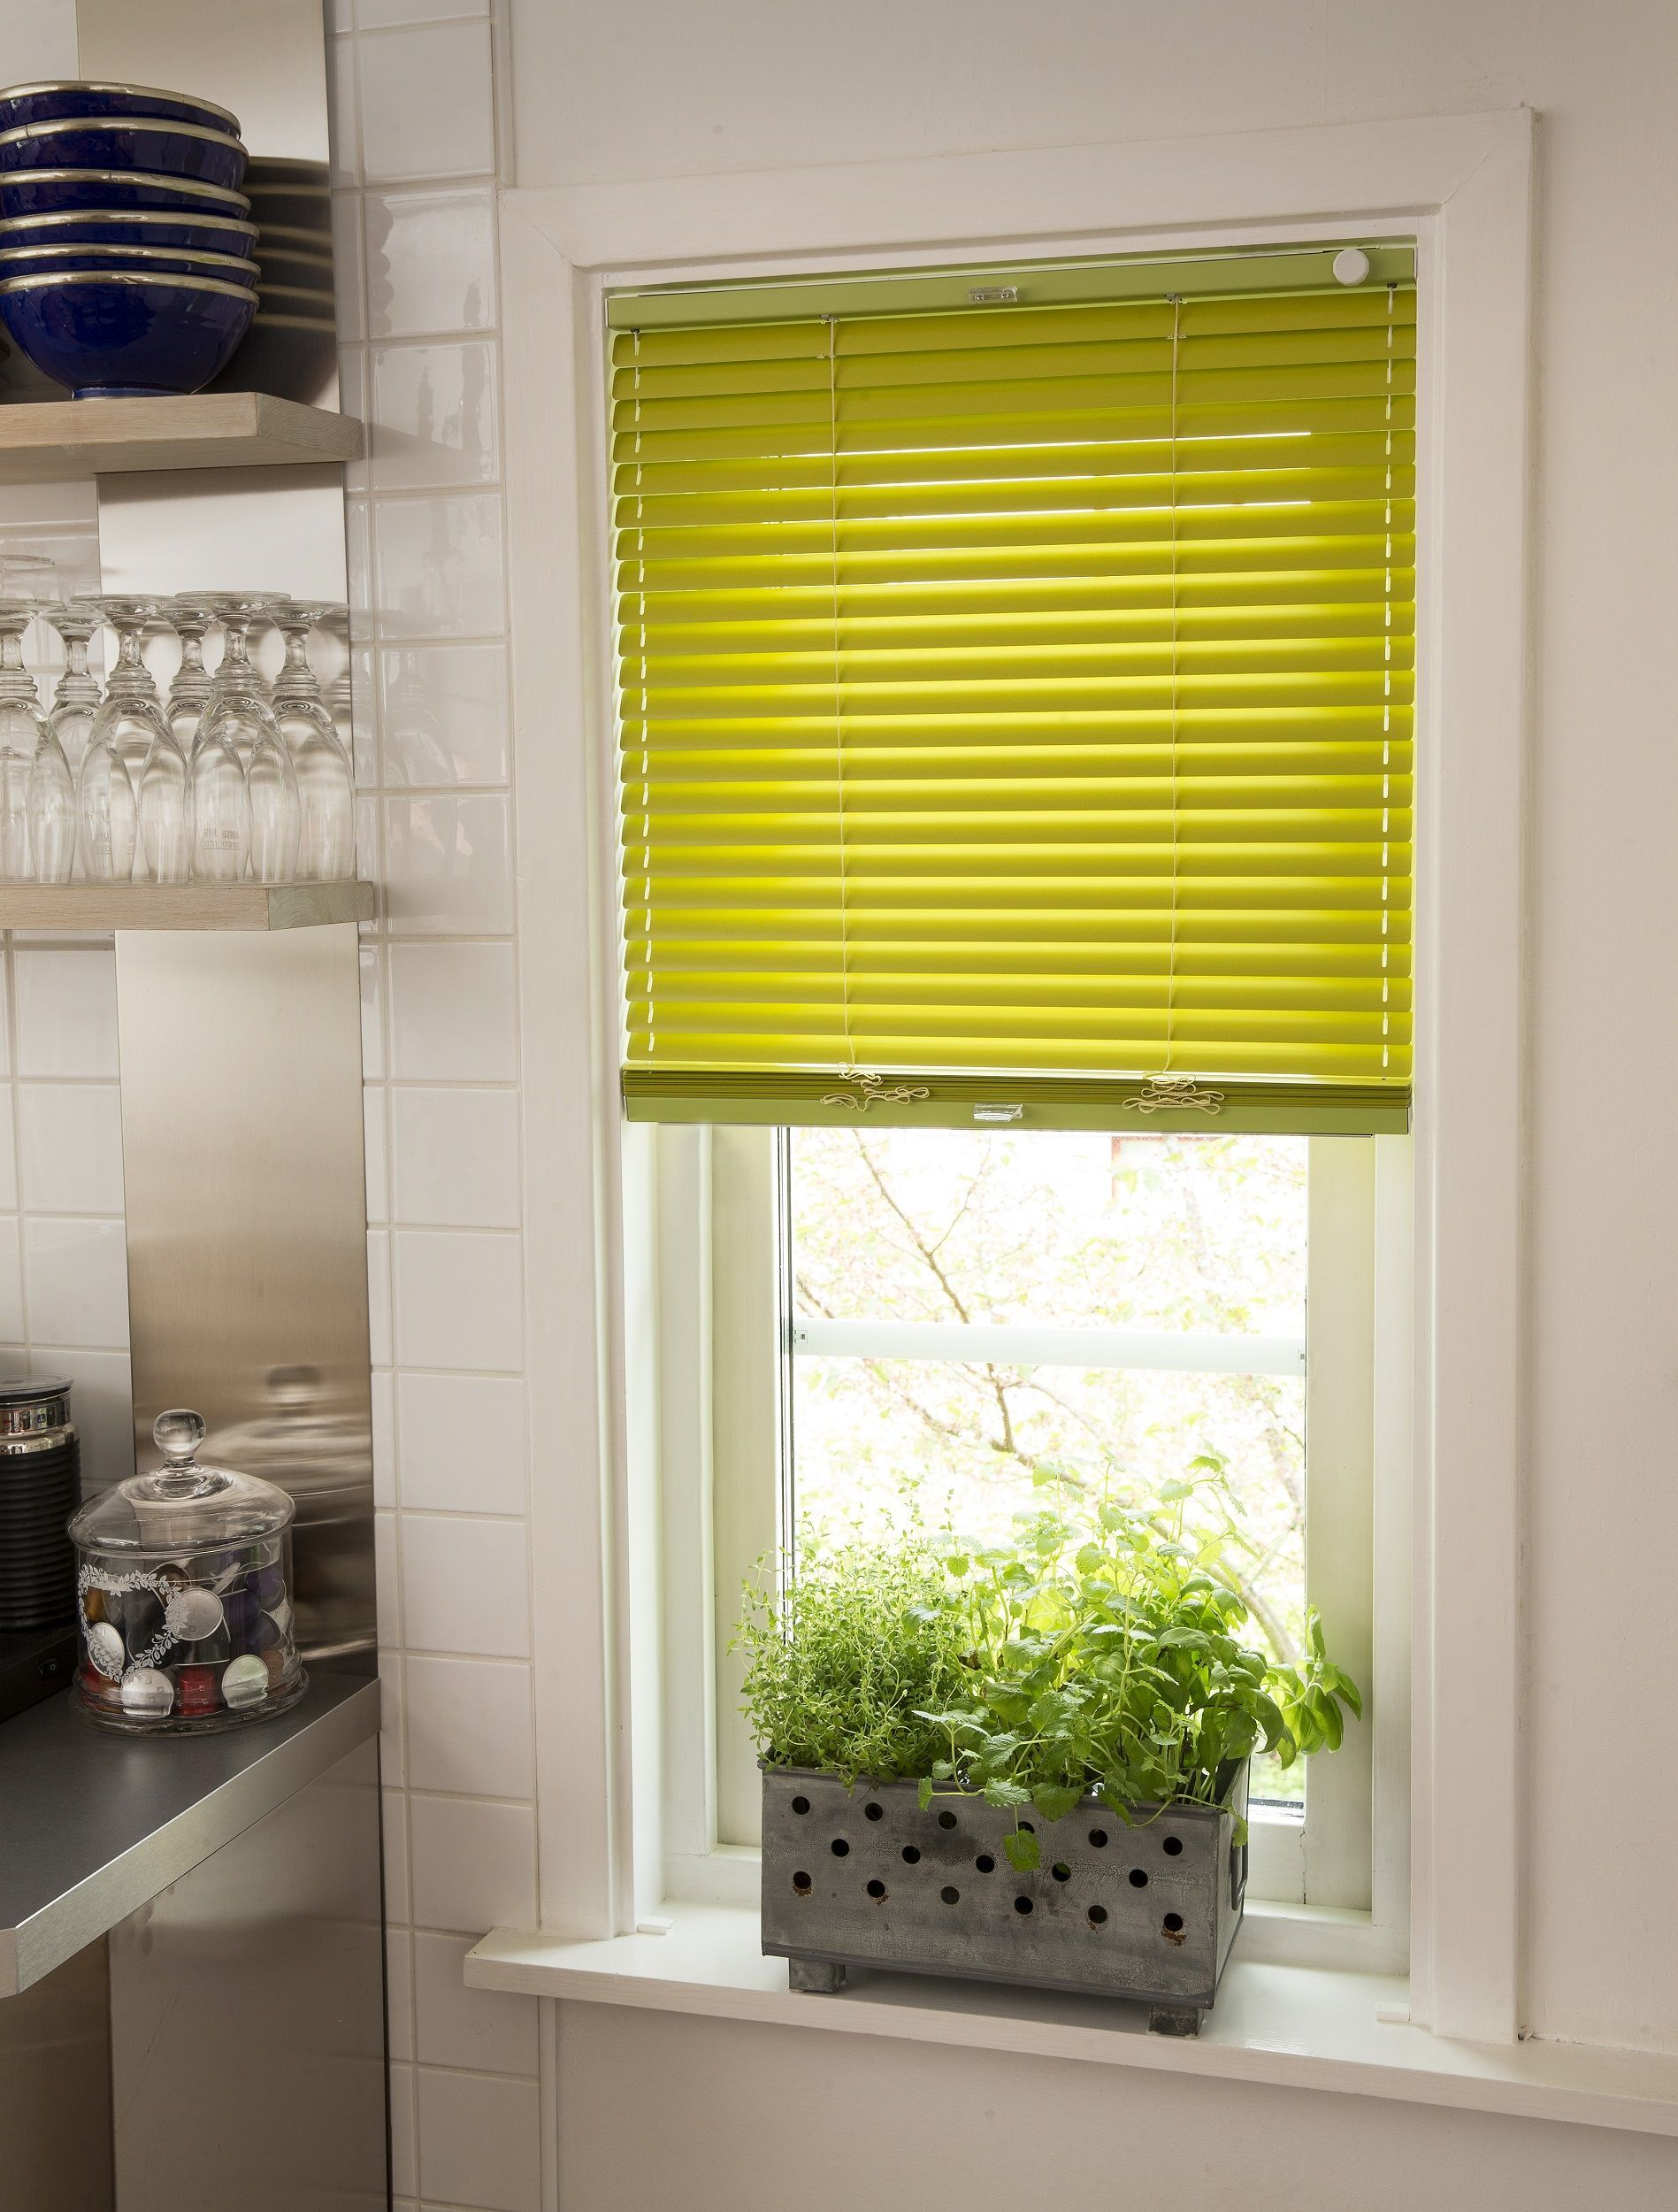 16 Resplendent Roller Blinds Accessories Ideas With Images